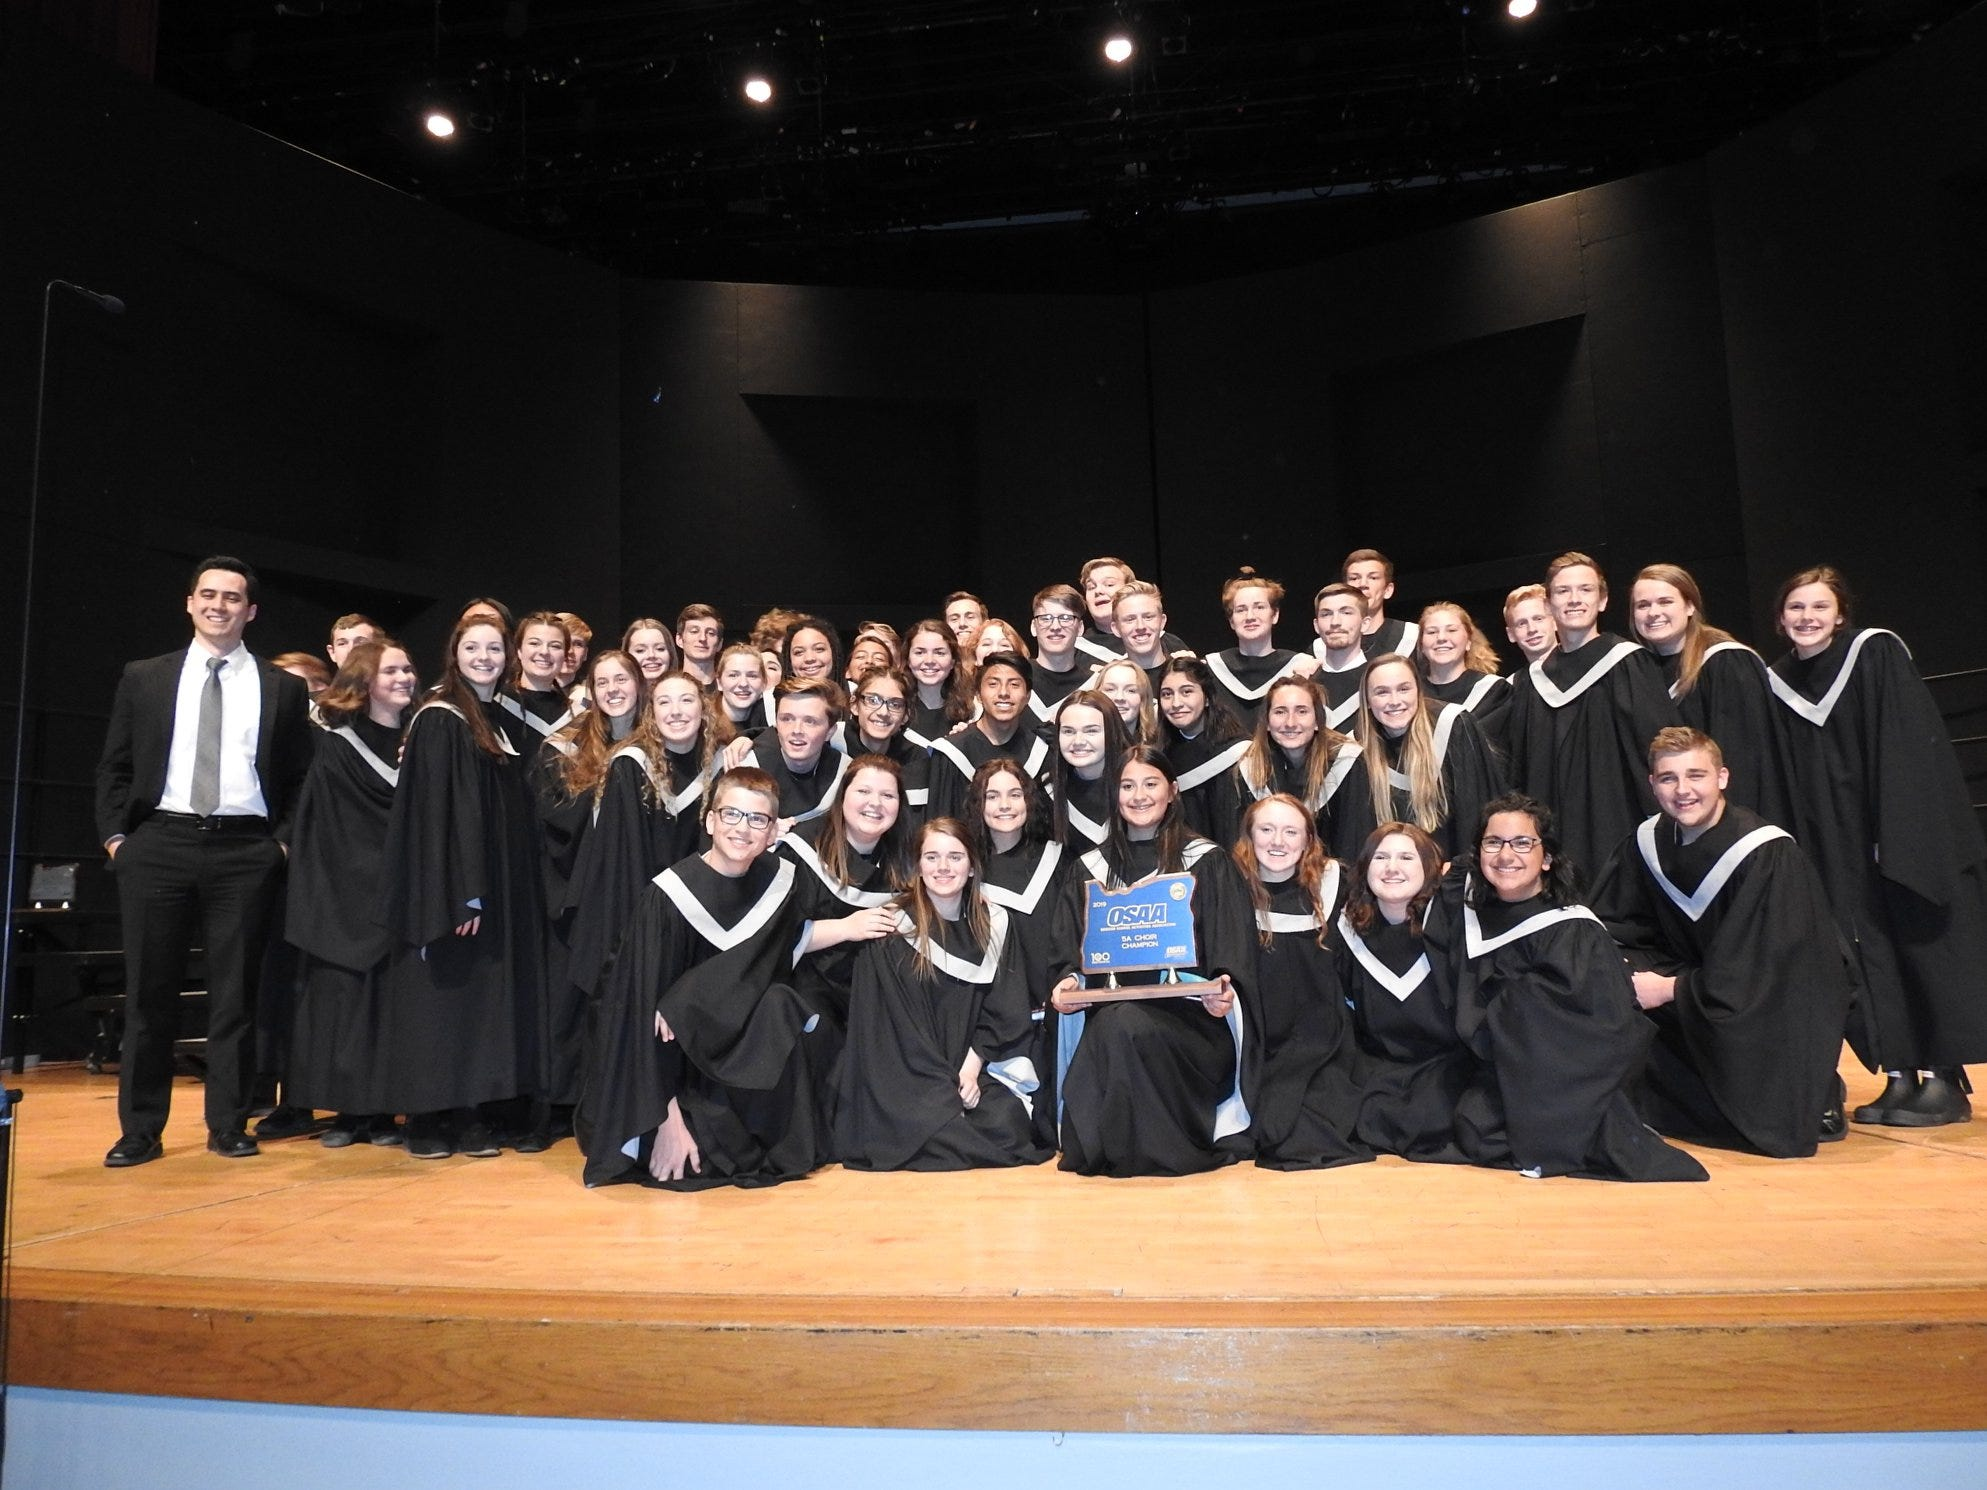 Silverton High School's choir, with their first place award, at the OSAA Choir State Championships at Oregon State University in Corvallis on April 30, 2019.